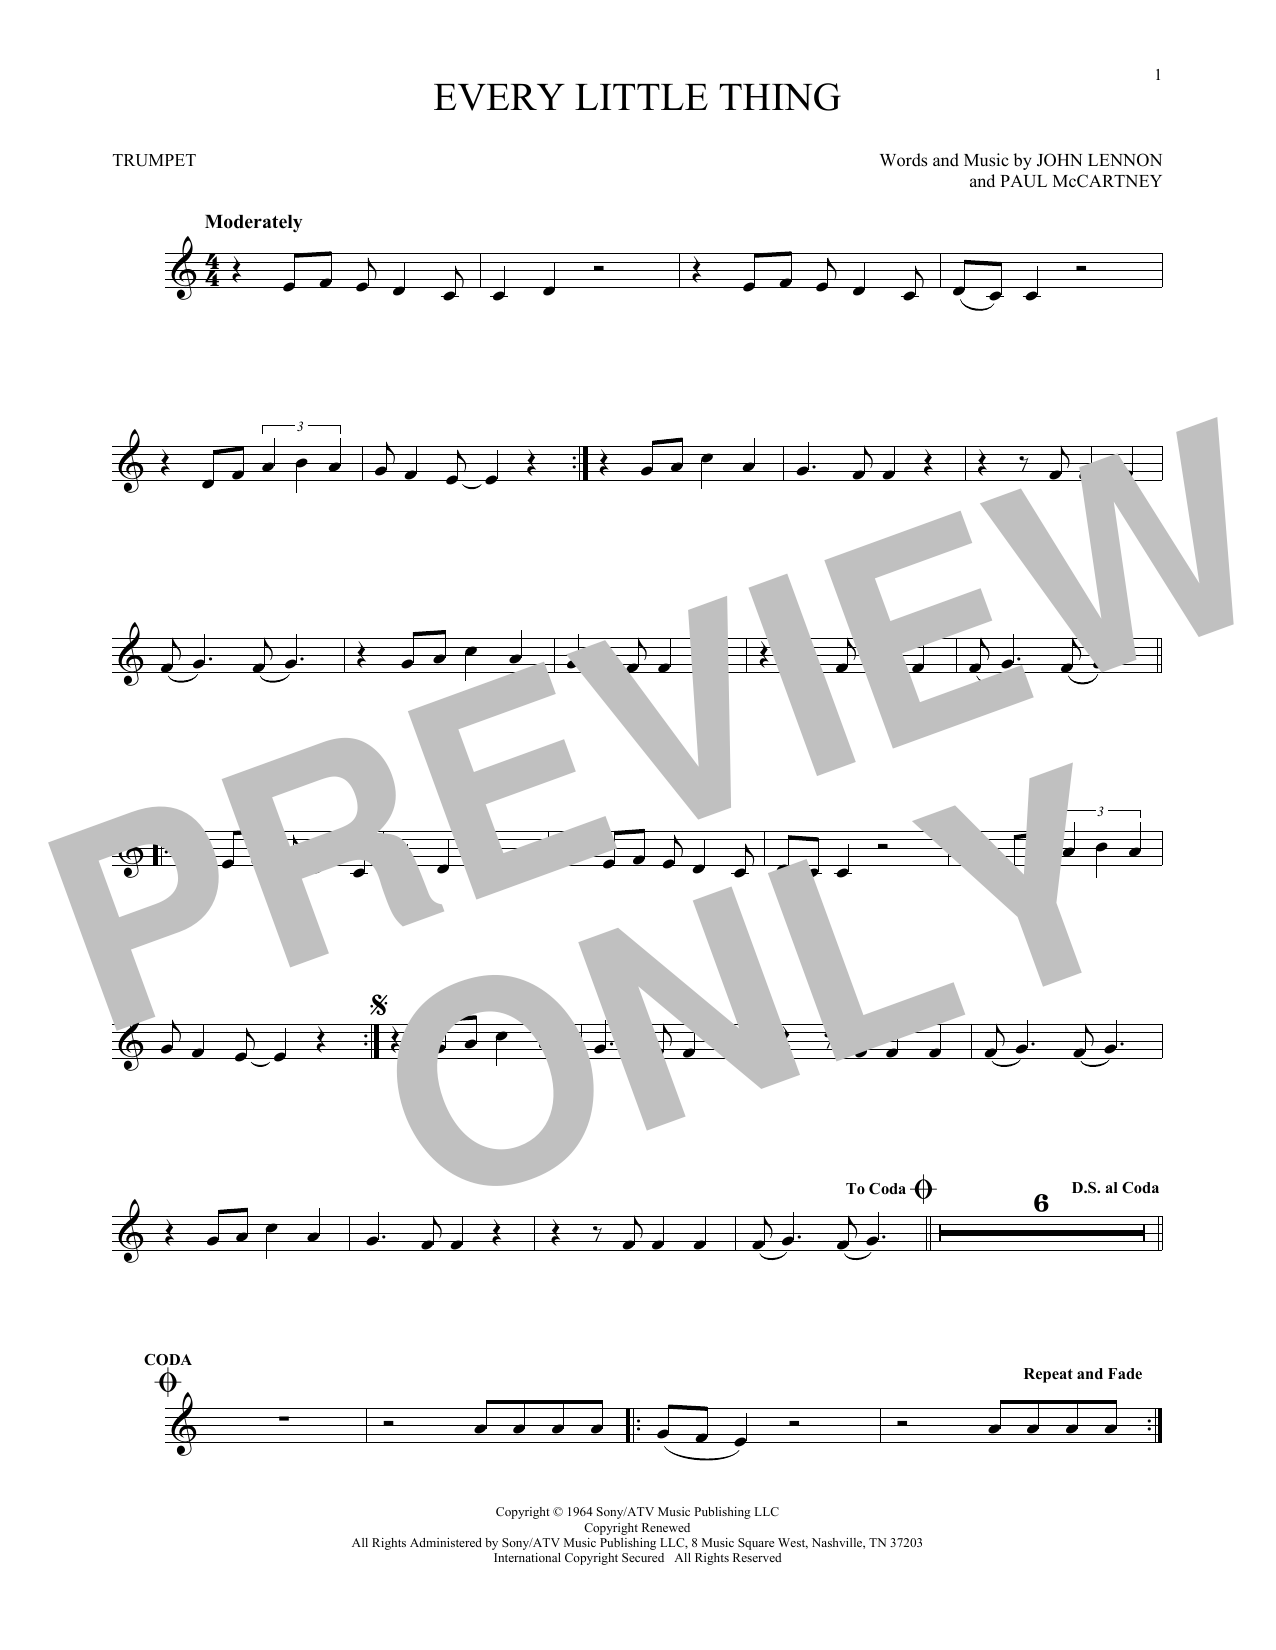 The Beatles 'Every Little Thing' Sheet Music Notes, Chords | Download  Printable Trumpet Solo - SKU: 171220